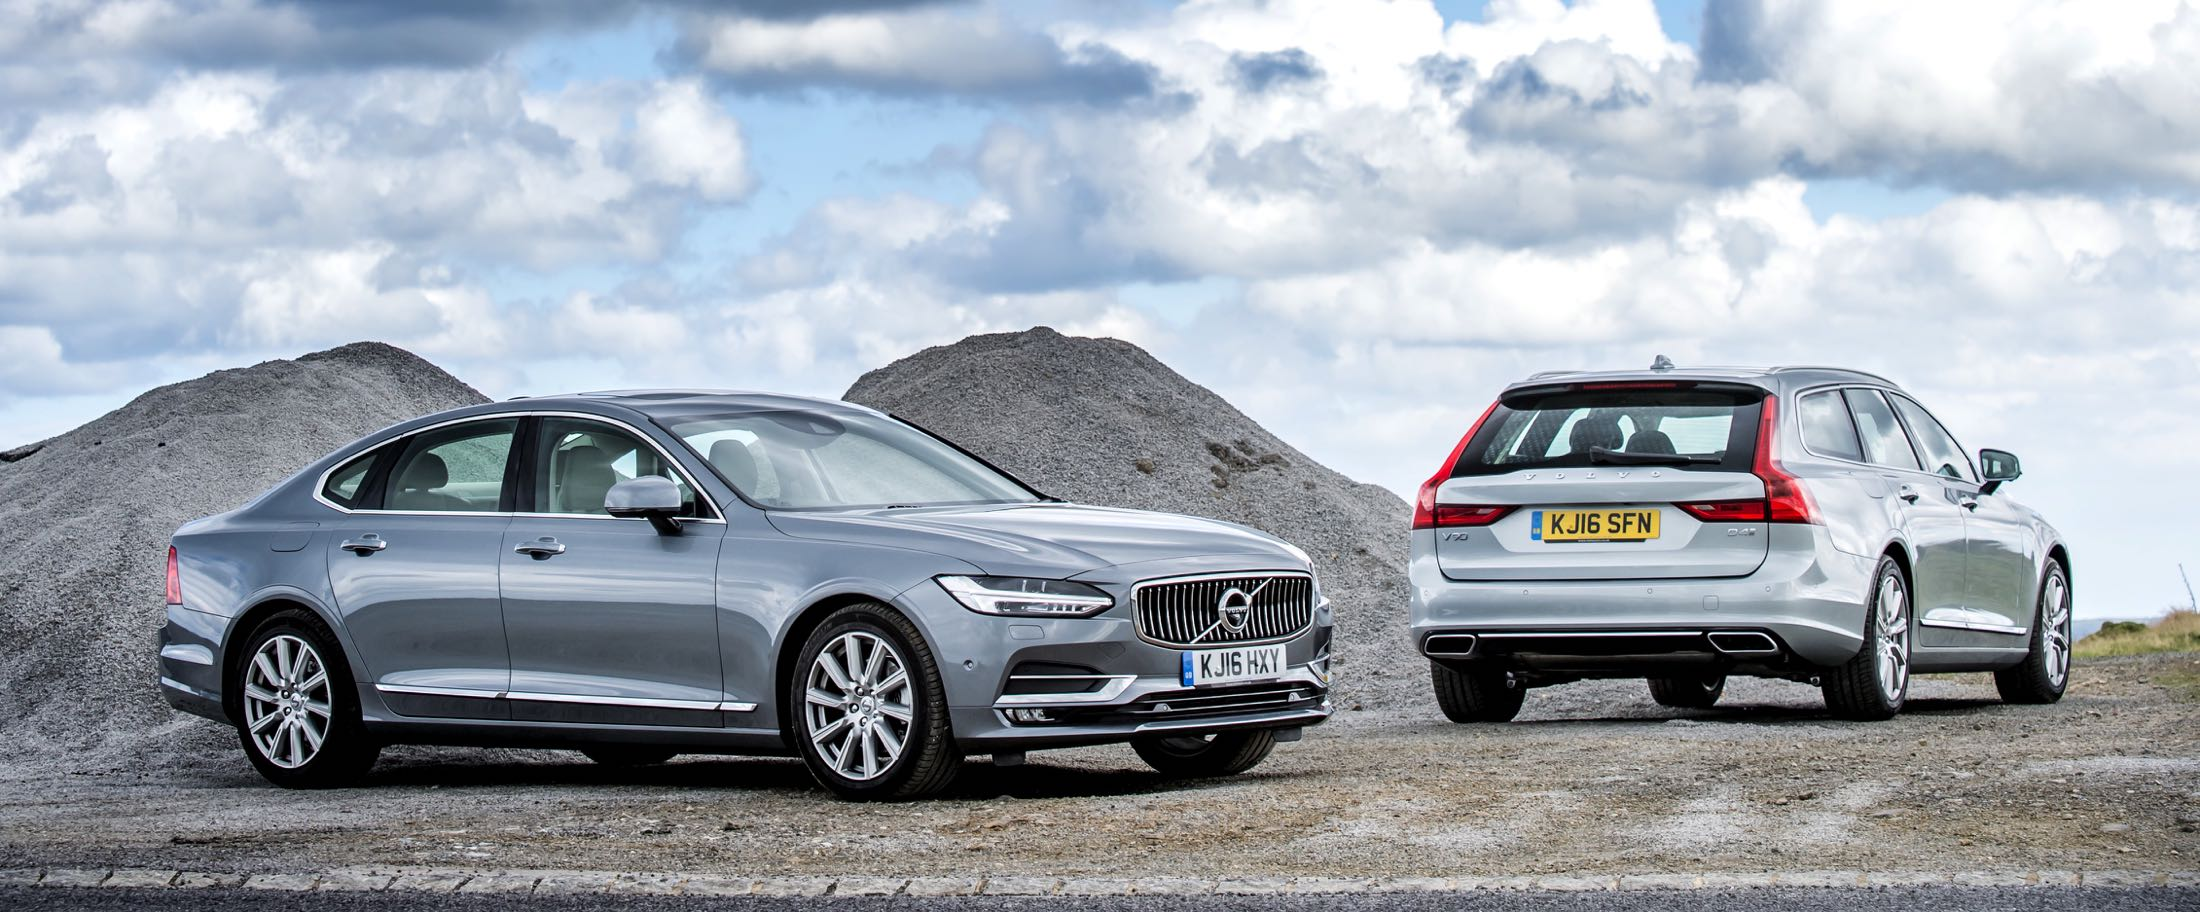 volvo-s90-v90-d4-duo-copy